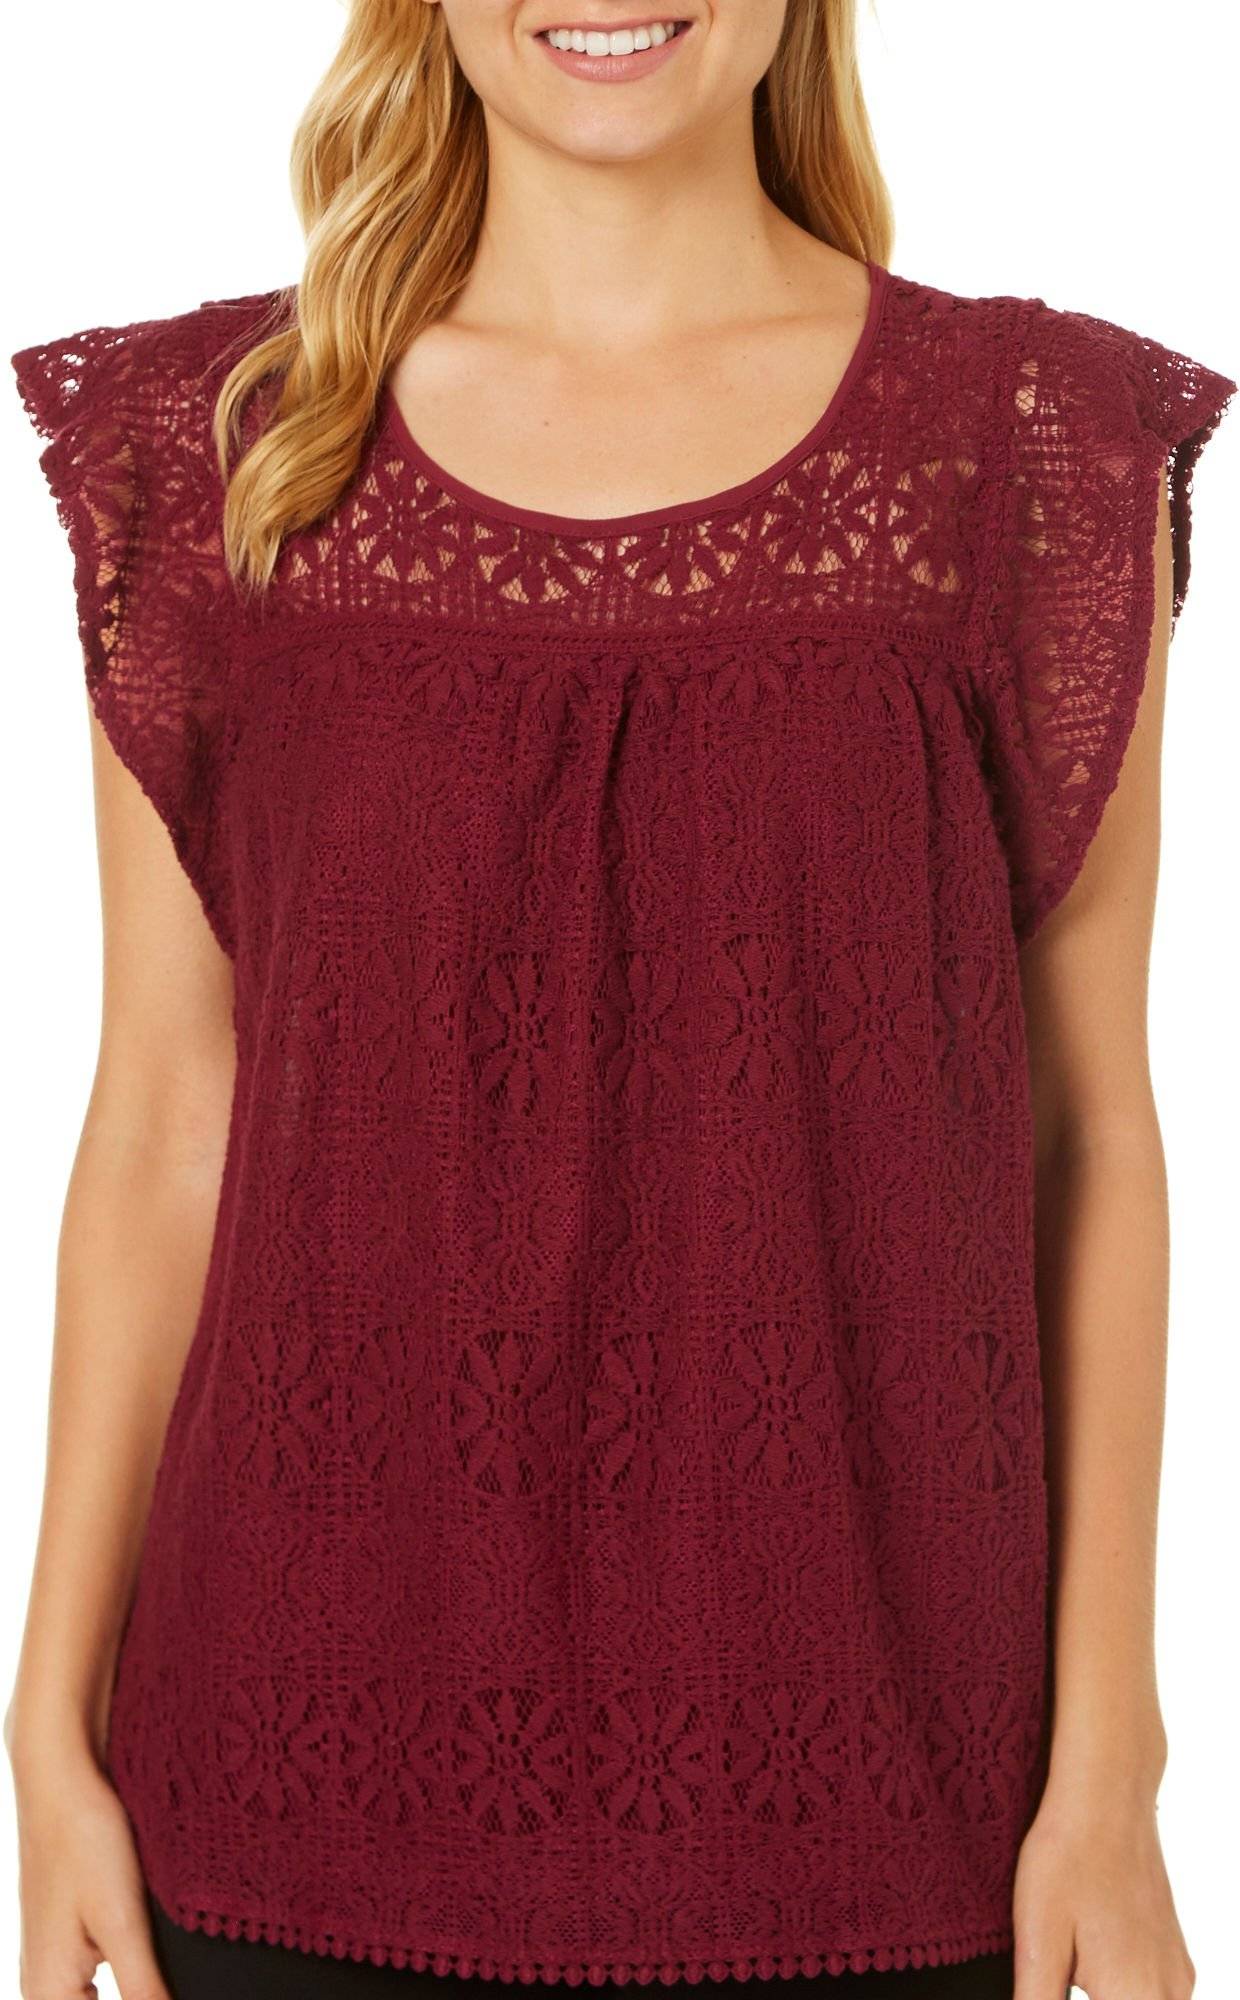 Miss Chievous Juniors Floral Lace Cap Sleeve Top Small Fine Wine red